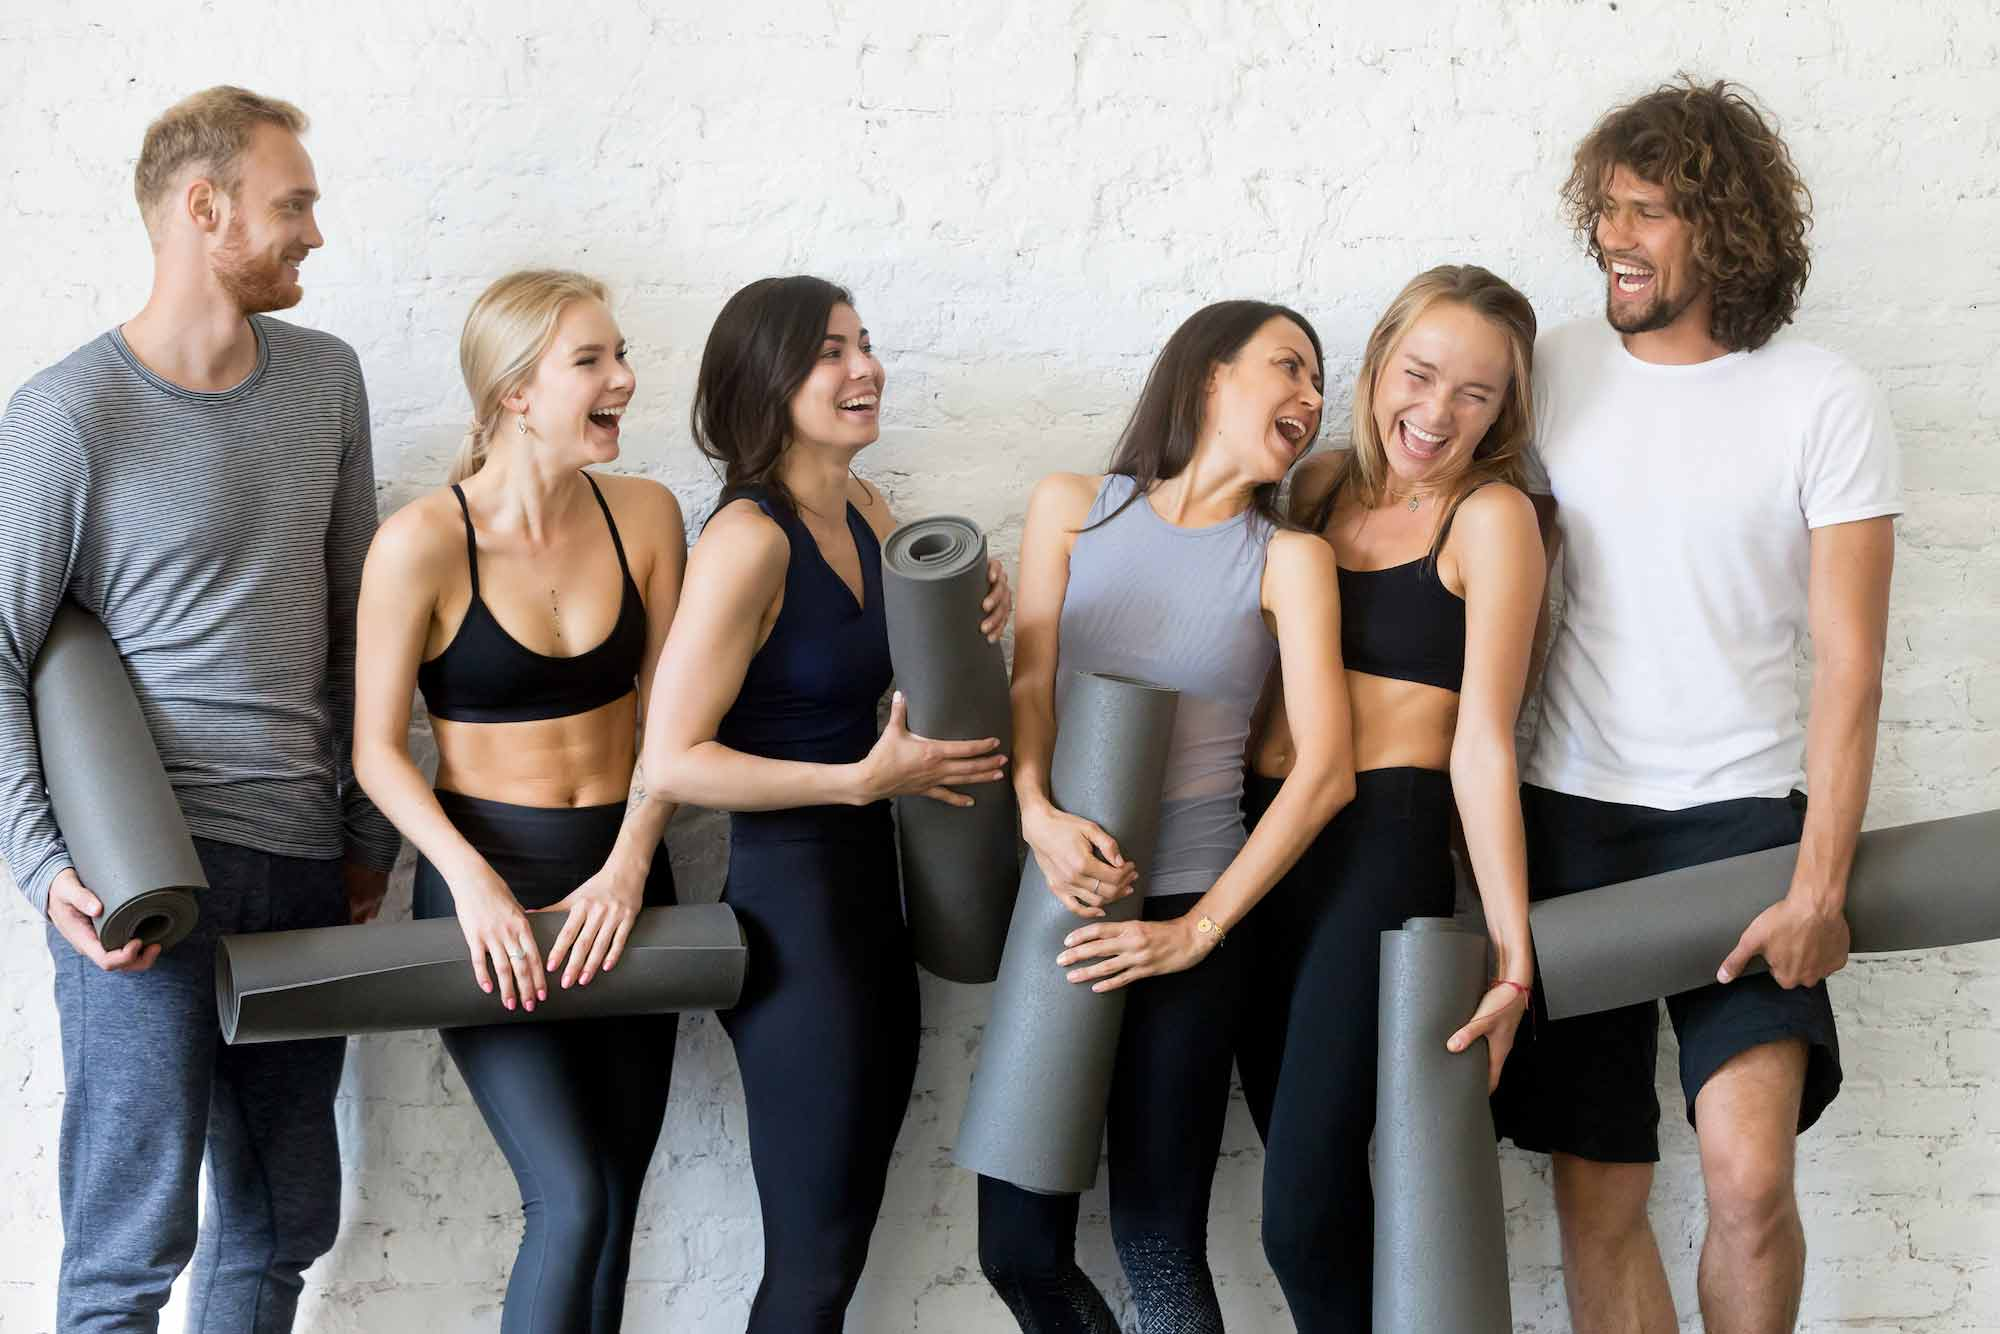 Origin House of Fitness mock photo of a group of fit people with yoga mats